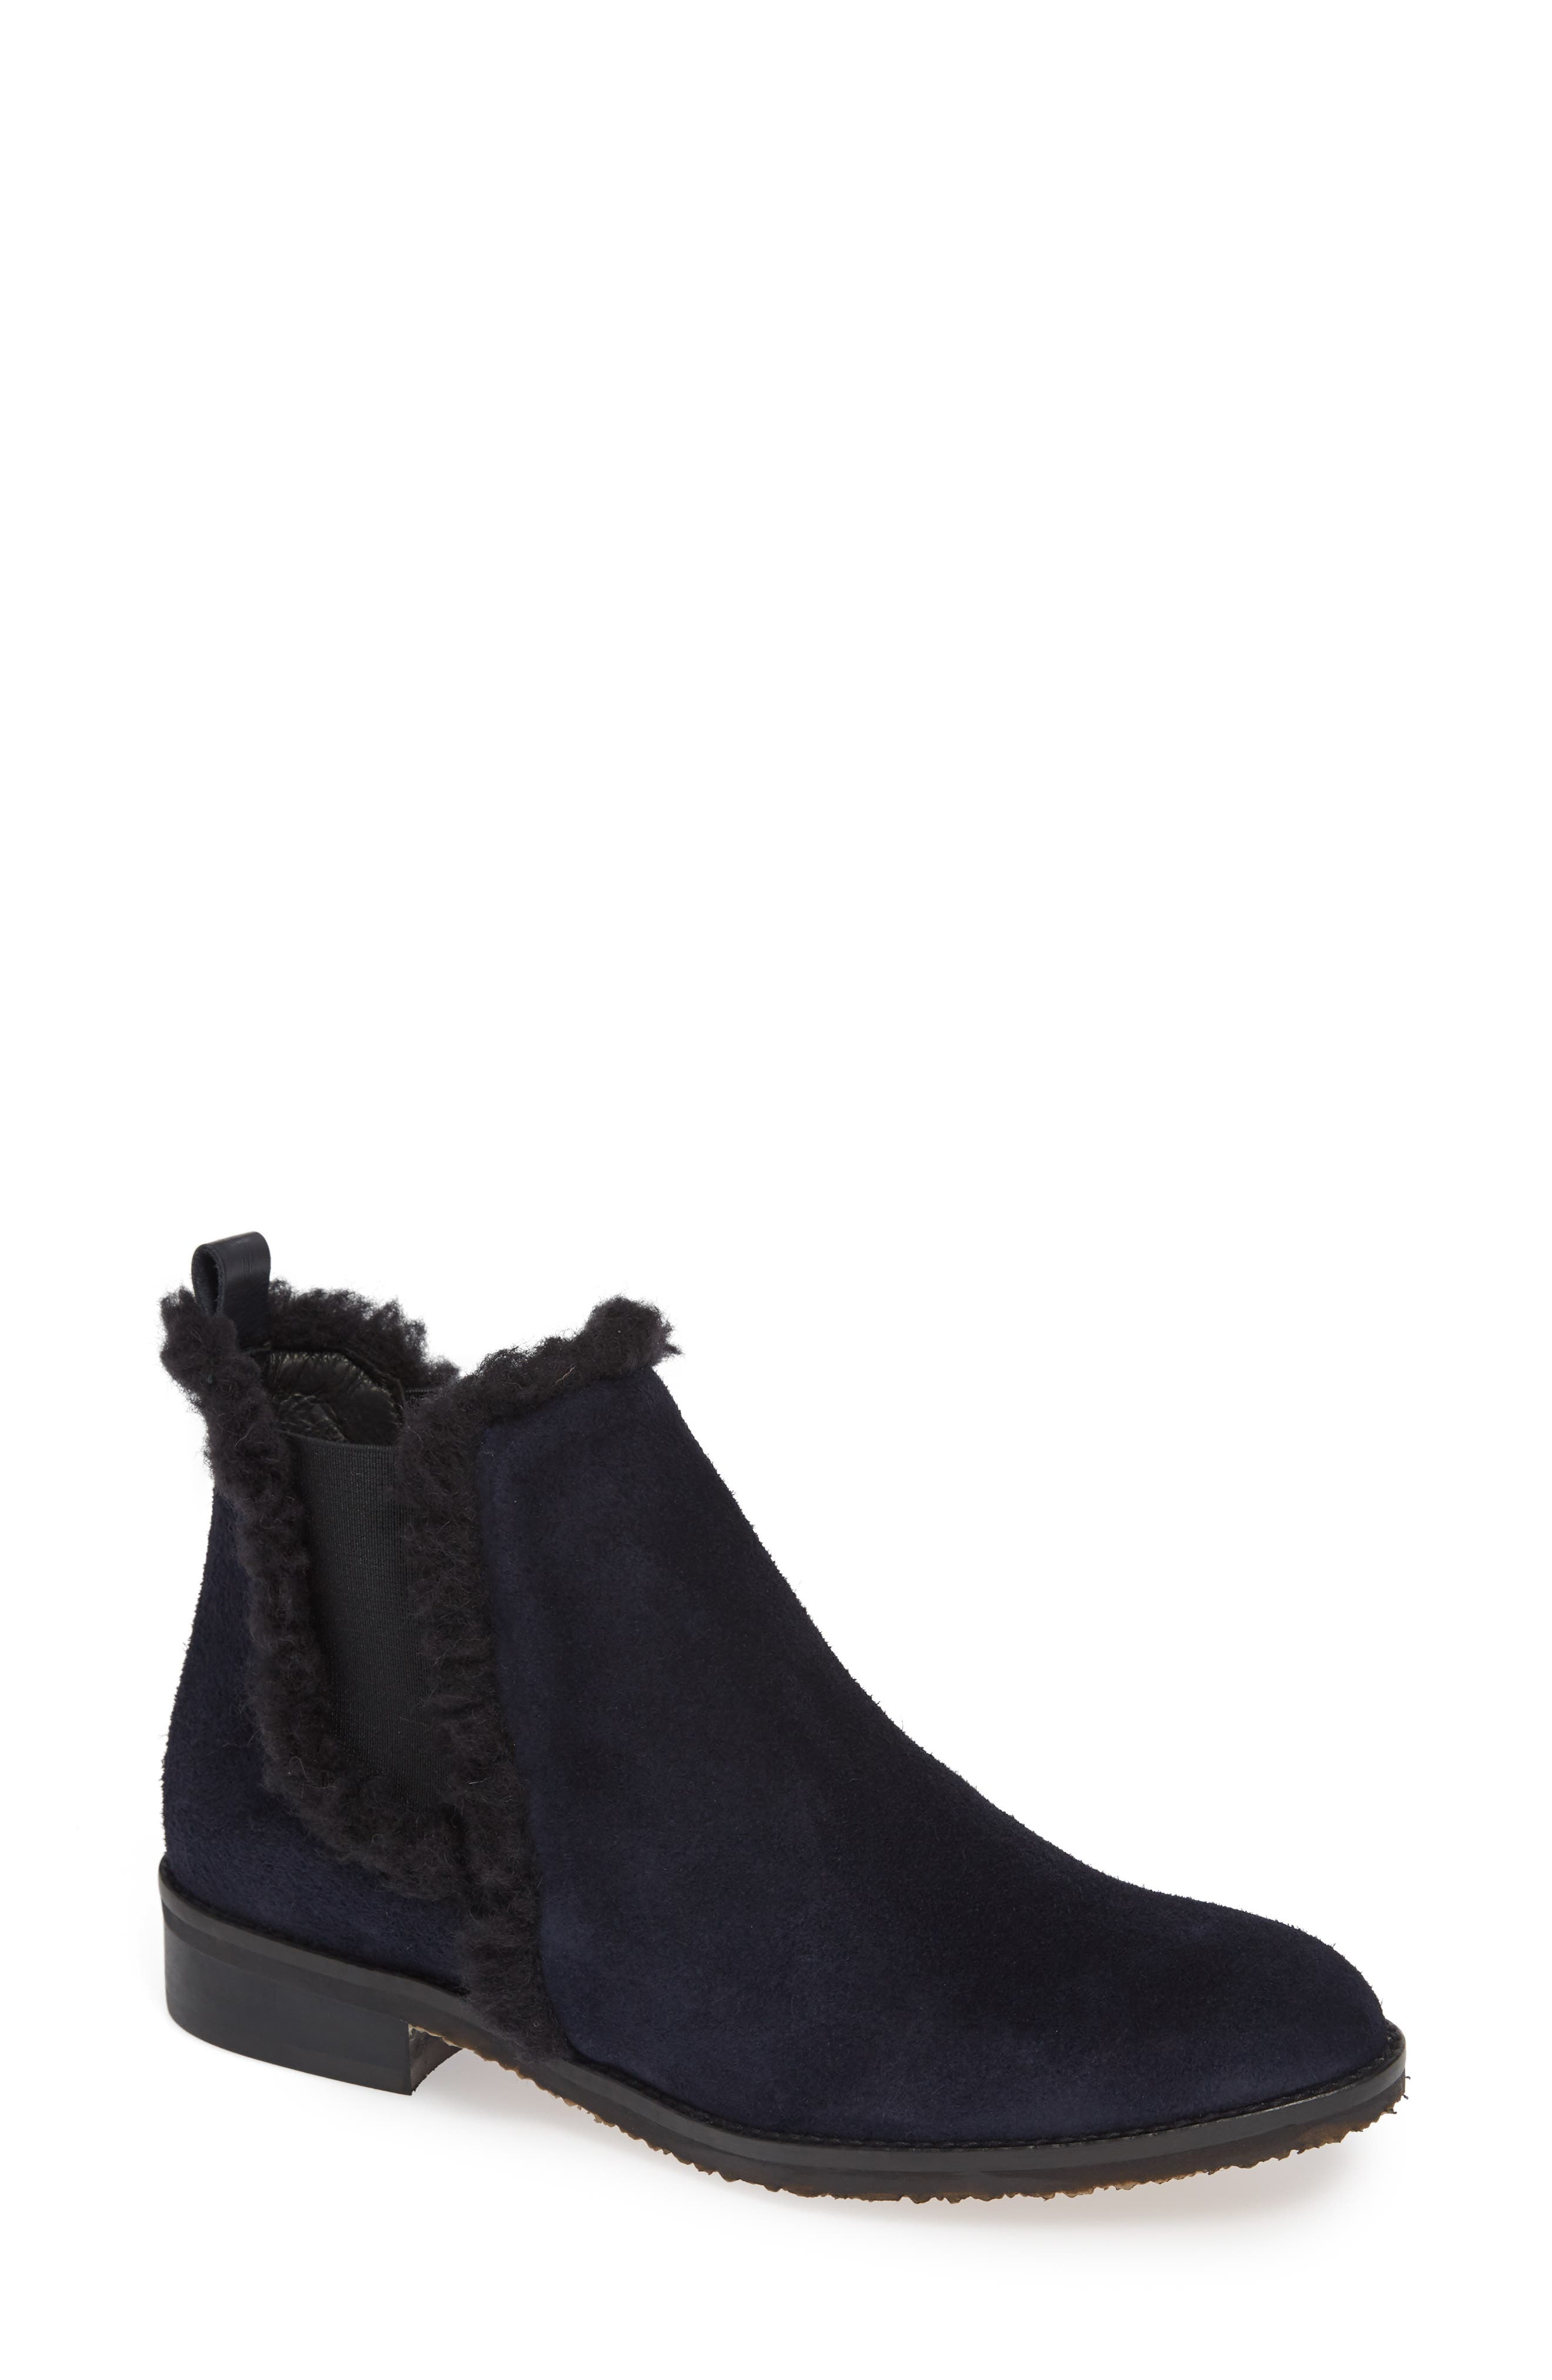 Patricia Green Penelope Chelsea Boot, Blue